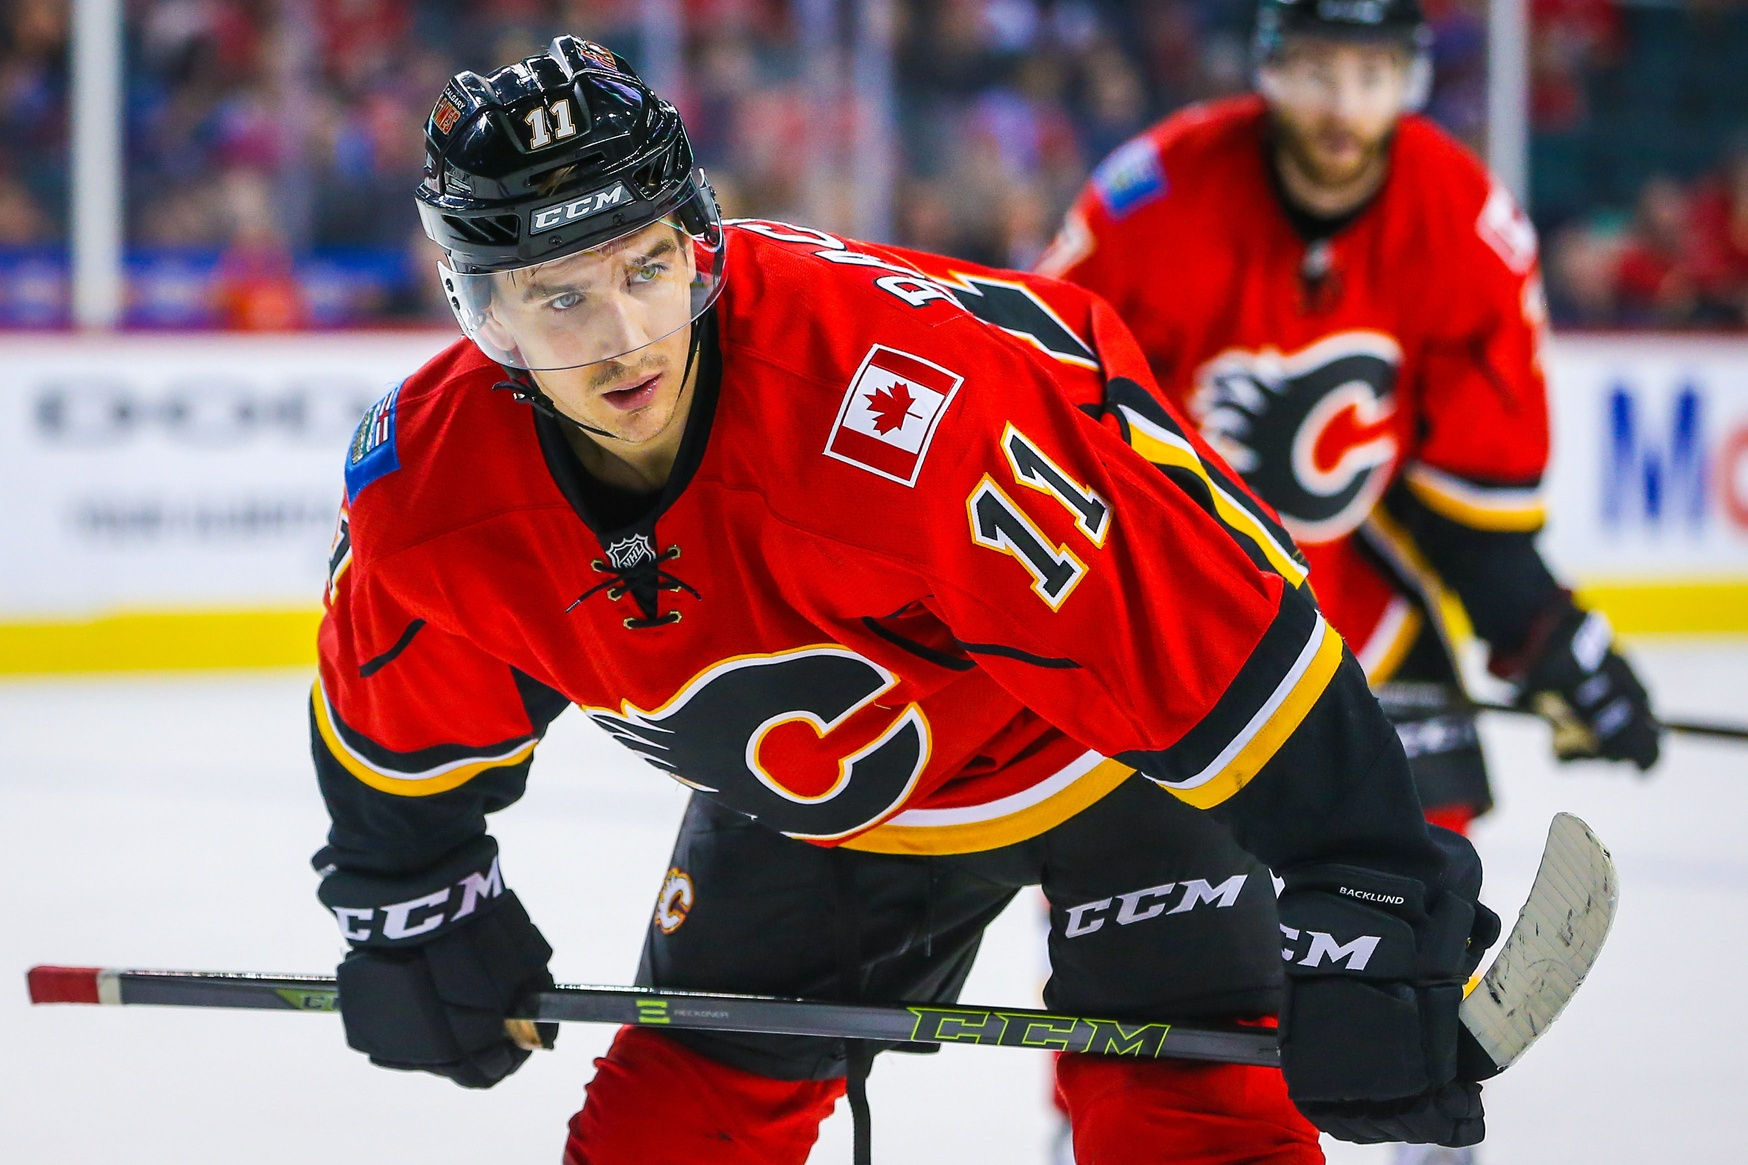 Daily Fantasy Saturday: Backlund a Hot Flame